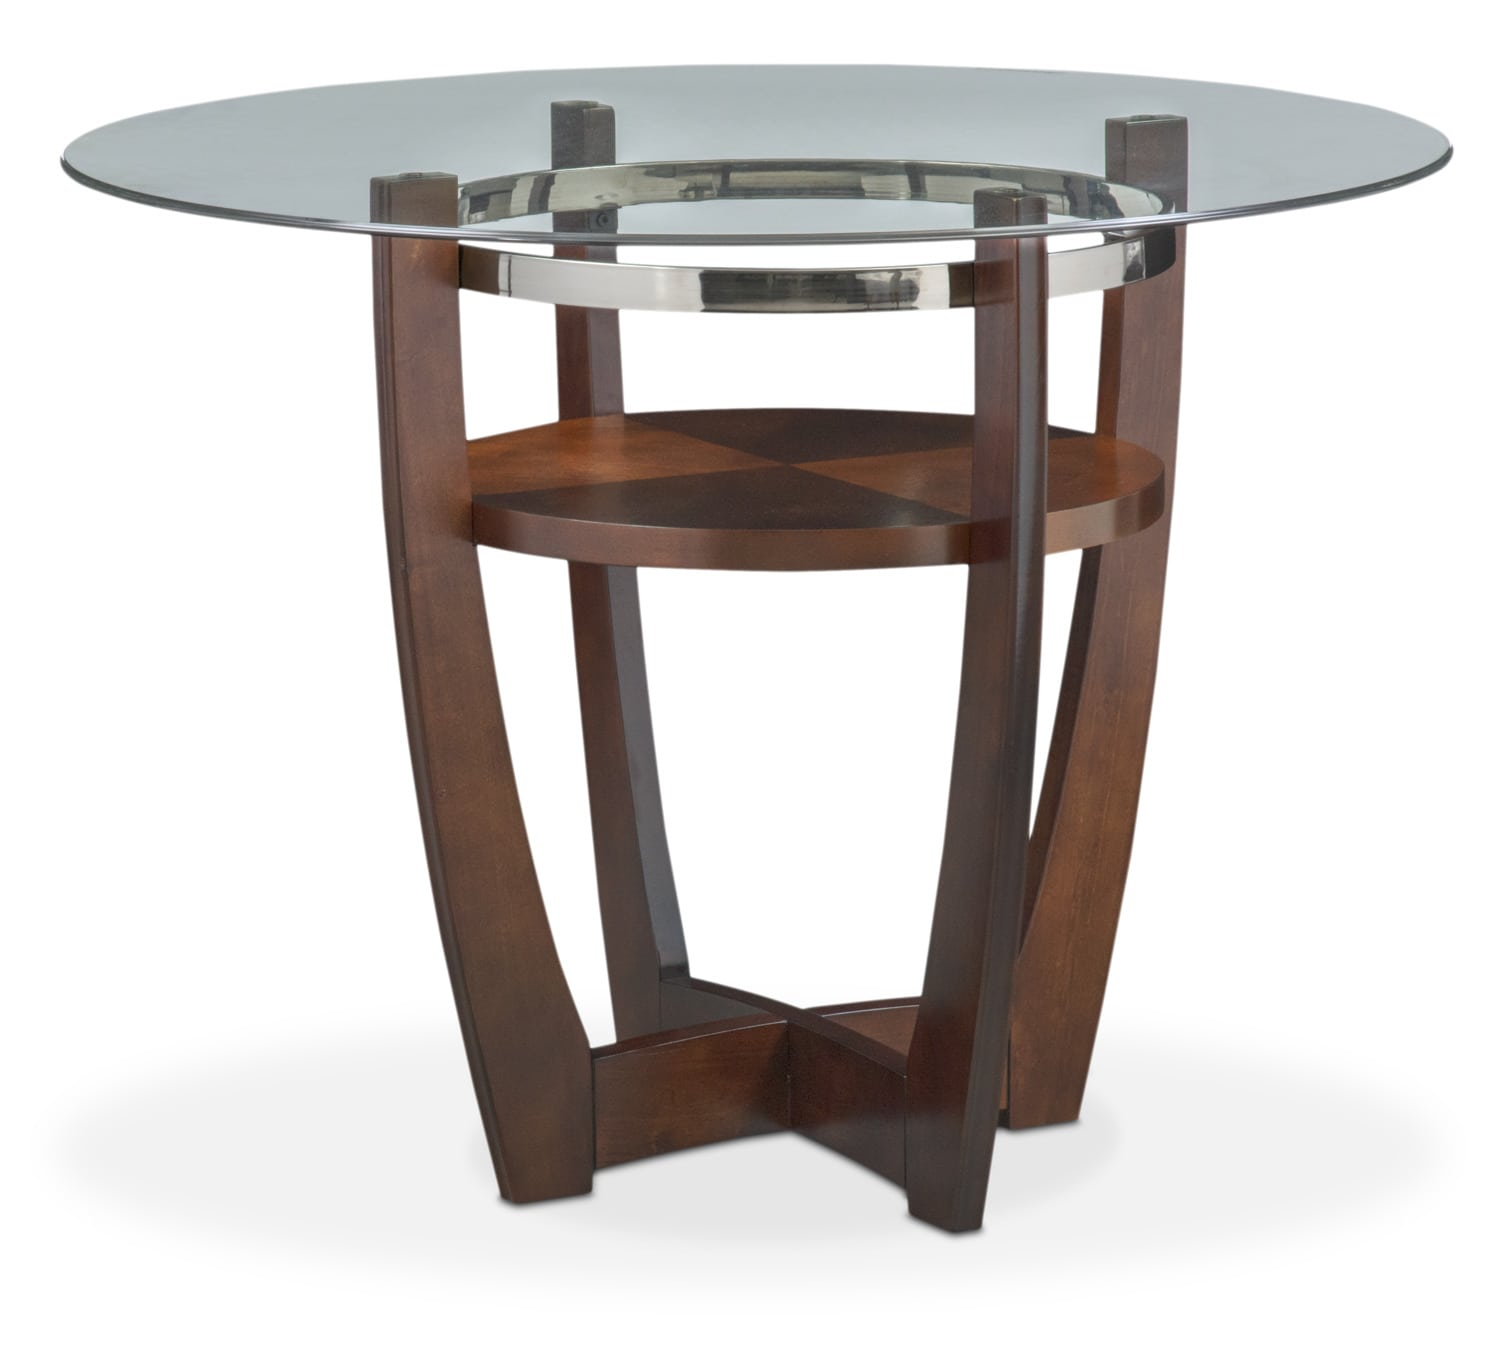 Shop all dining room tables american signature furniture for Shop dining tables